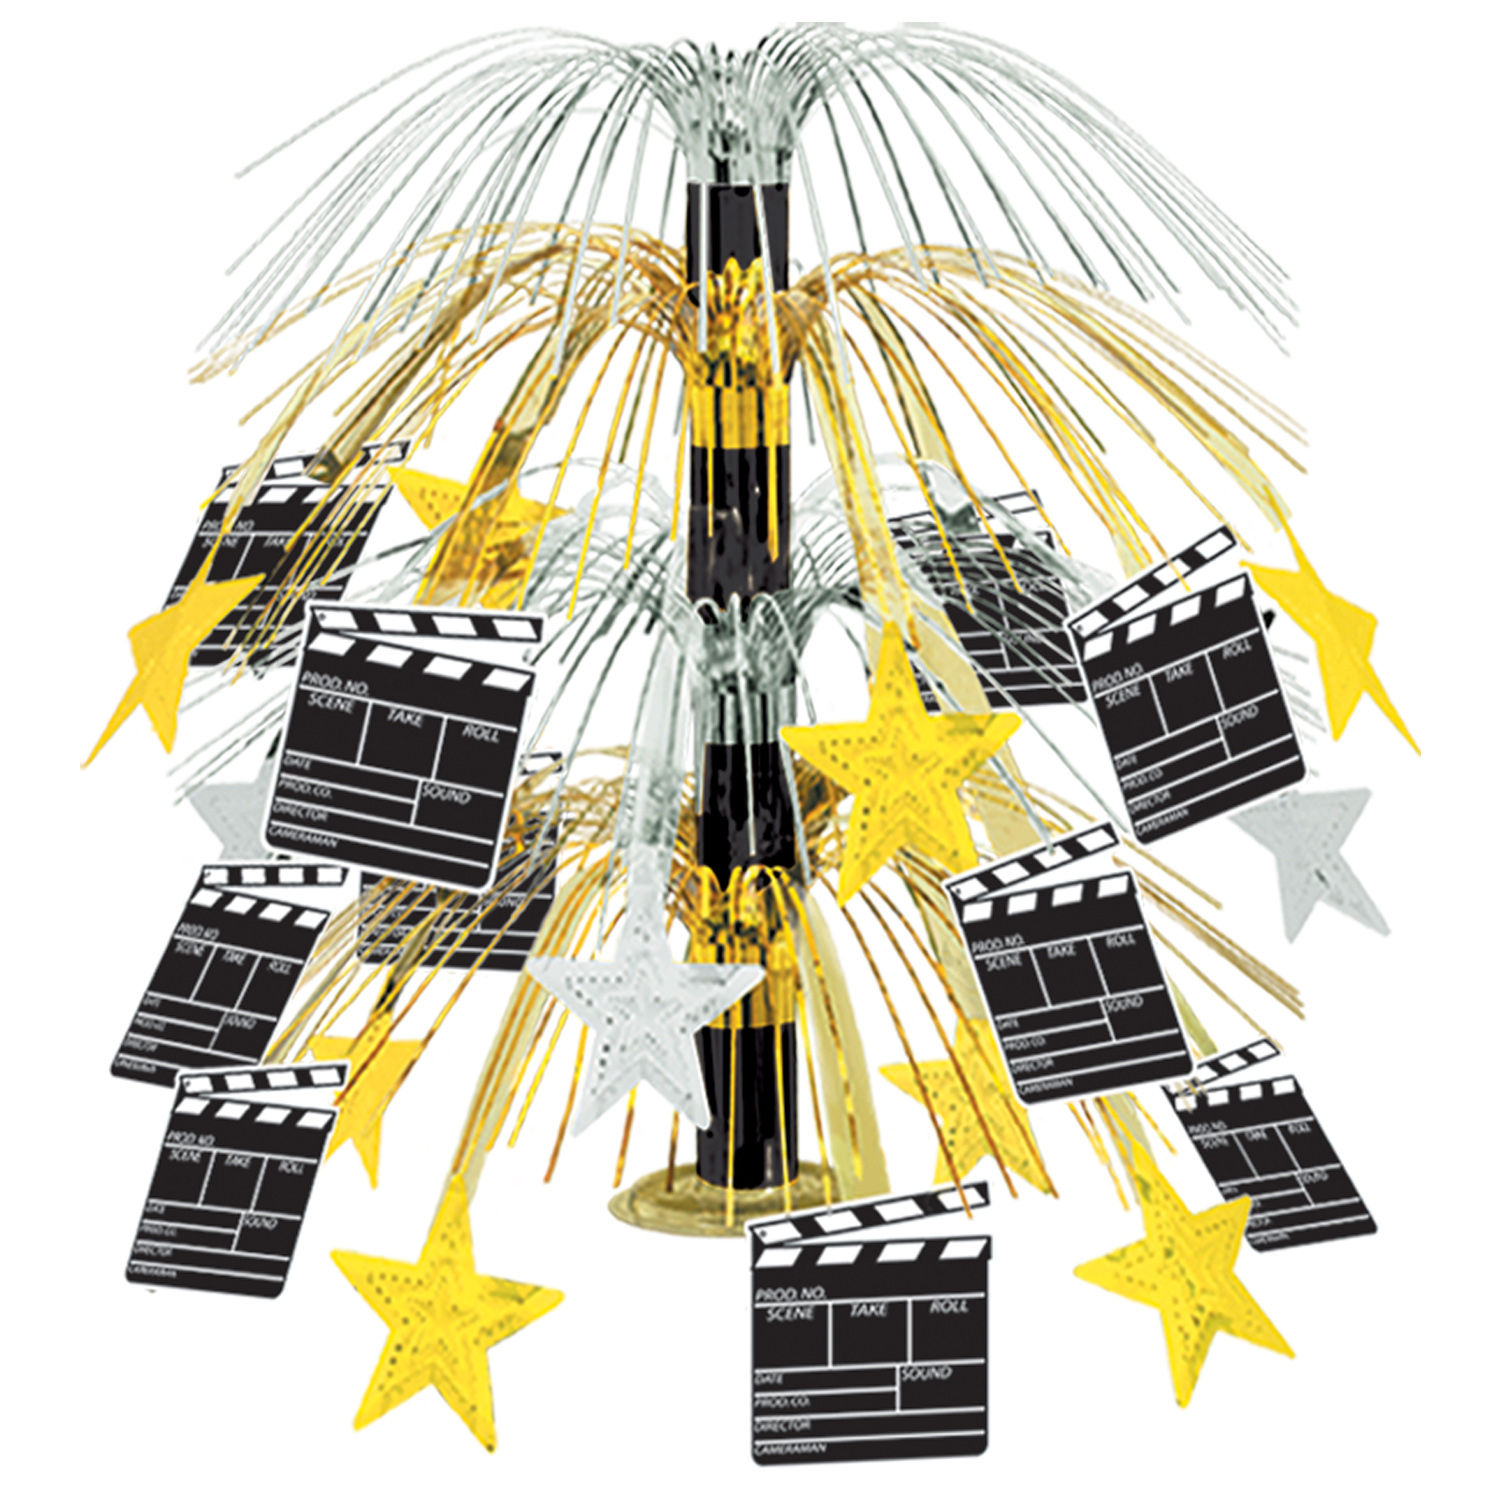 Movie Set Clapboard Cascade Centerpiece (Pack of 6) Movie Set Clapboard Cascade Centerpiece, decoration, centerpiece, hollywood, new years eve, wholesale, inexpensive, bulk